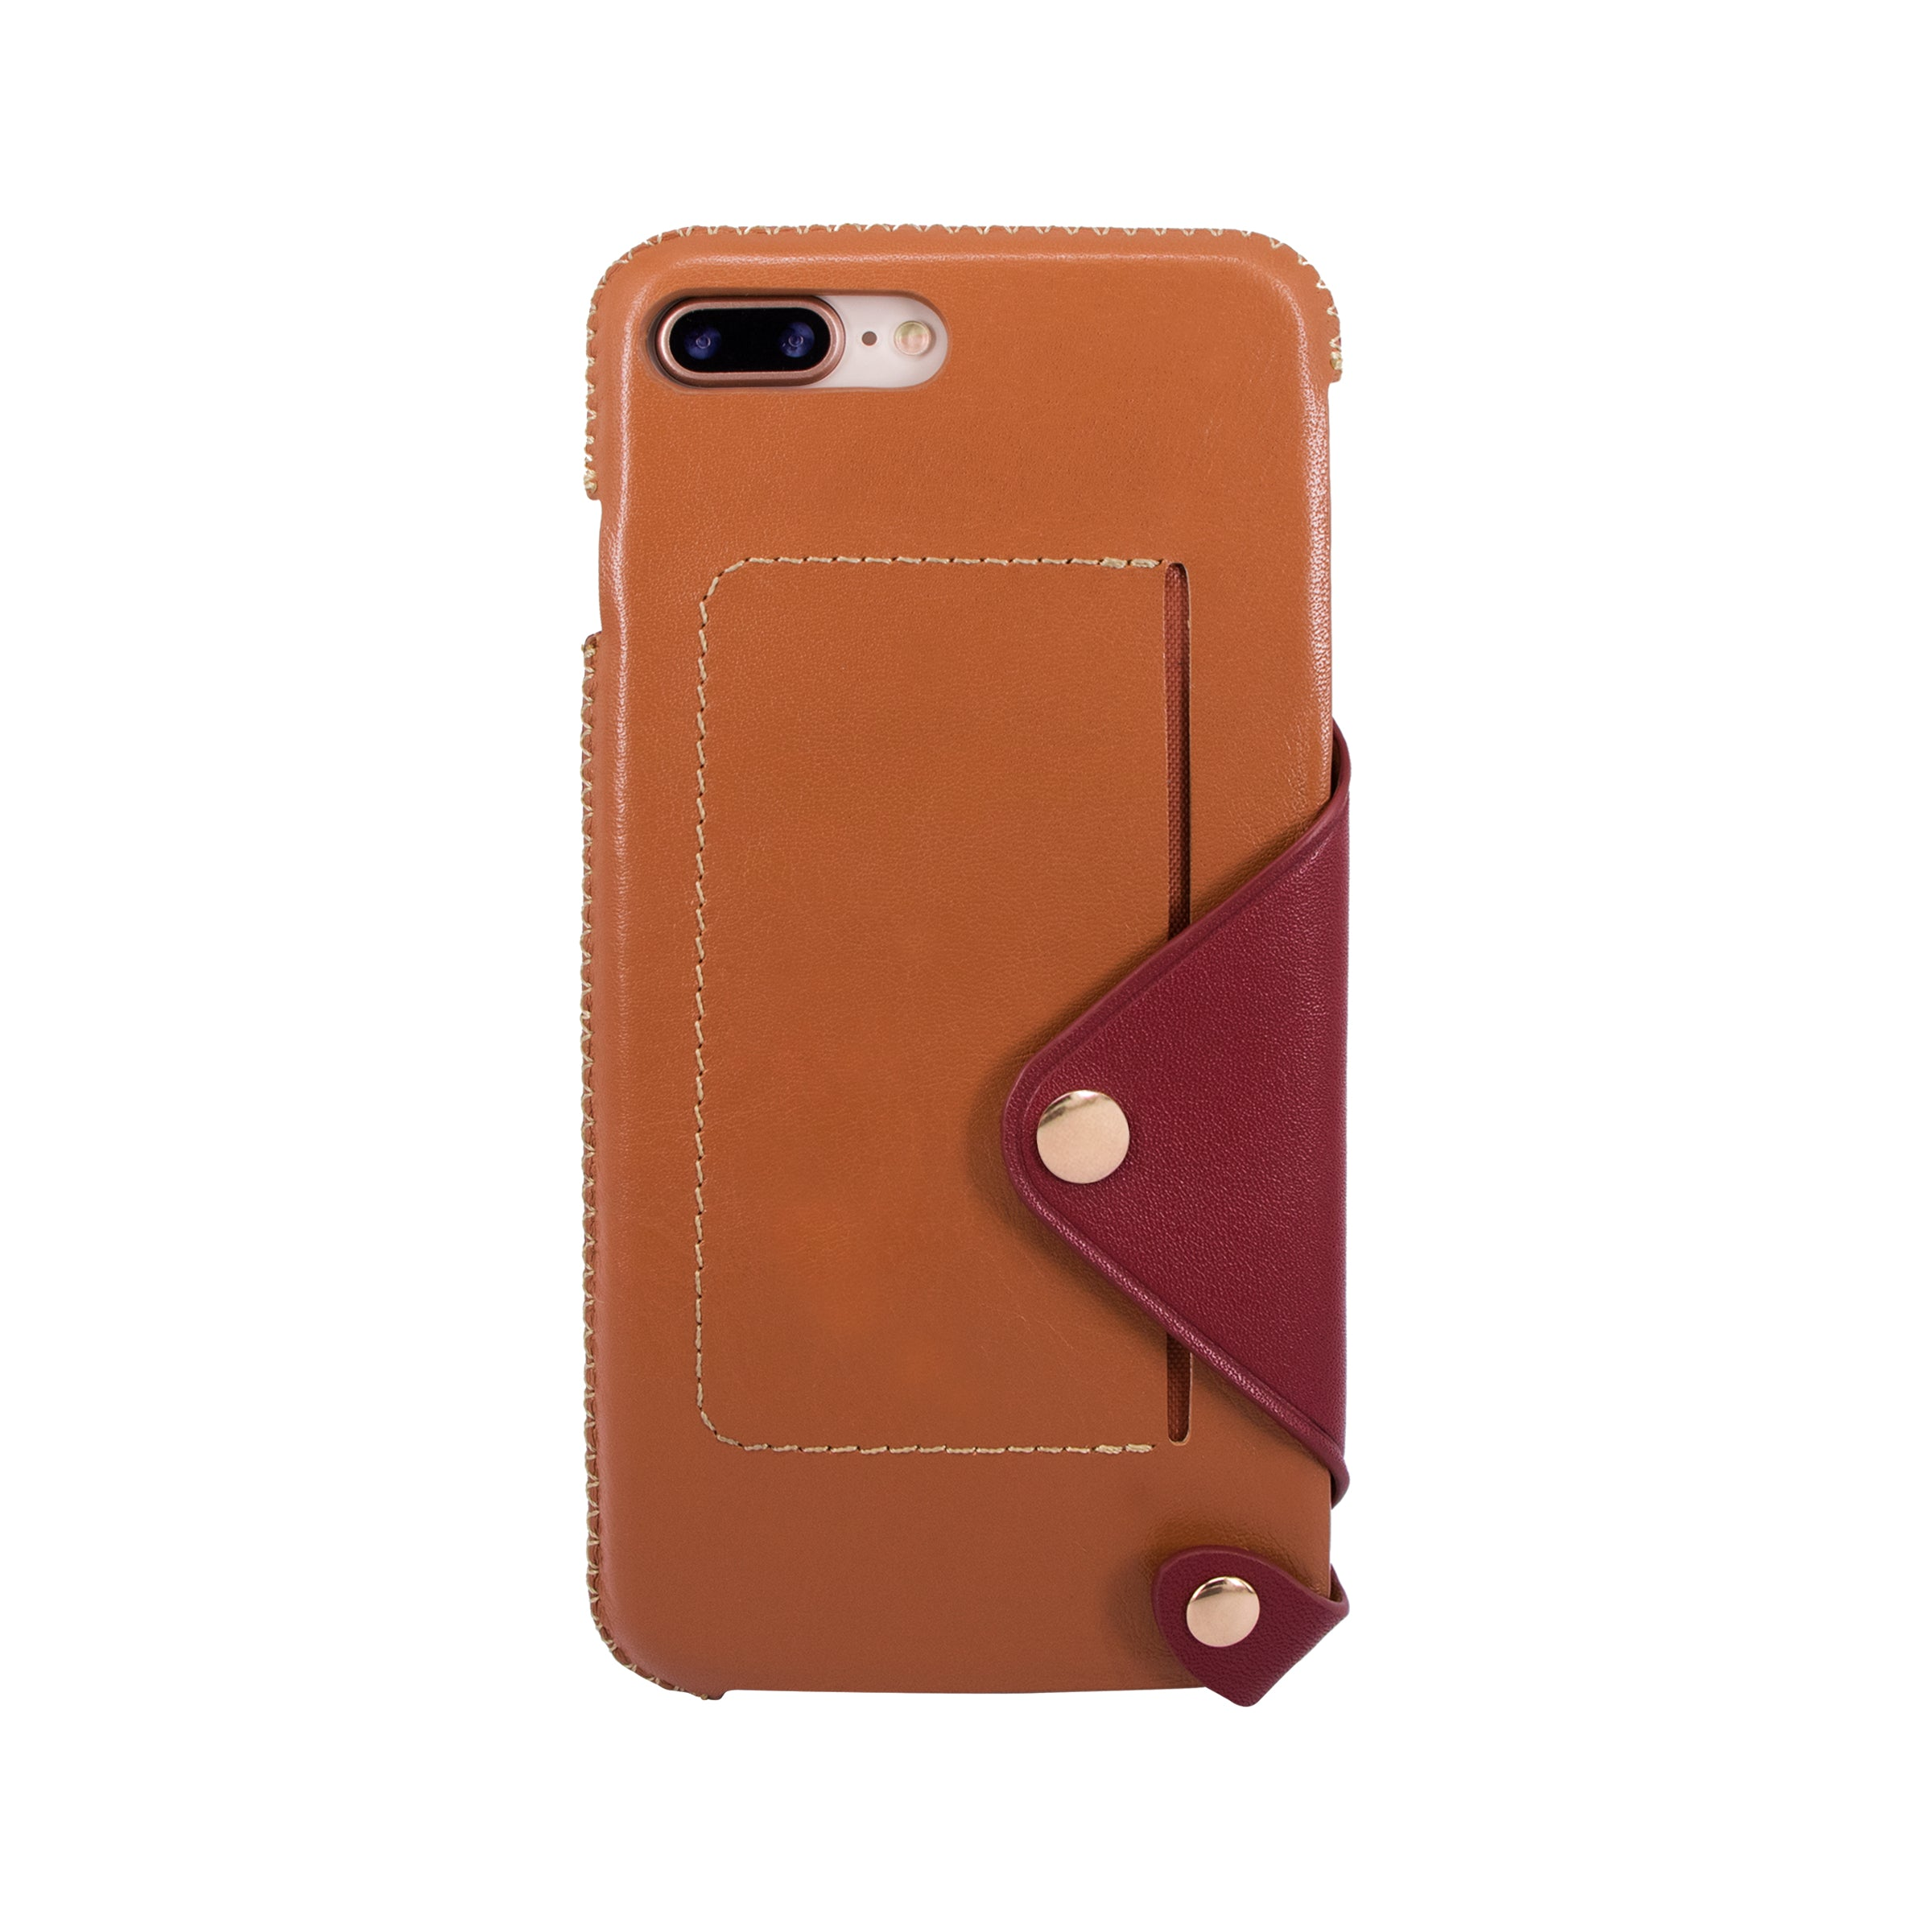 new concept c0f16 cee87 Leather pocket case for iPhone 7 Plus / iPhone 8 Plus, Brown/Raisin